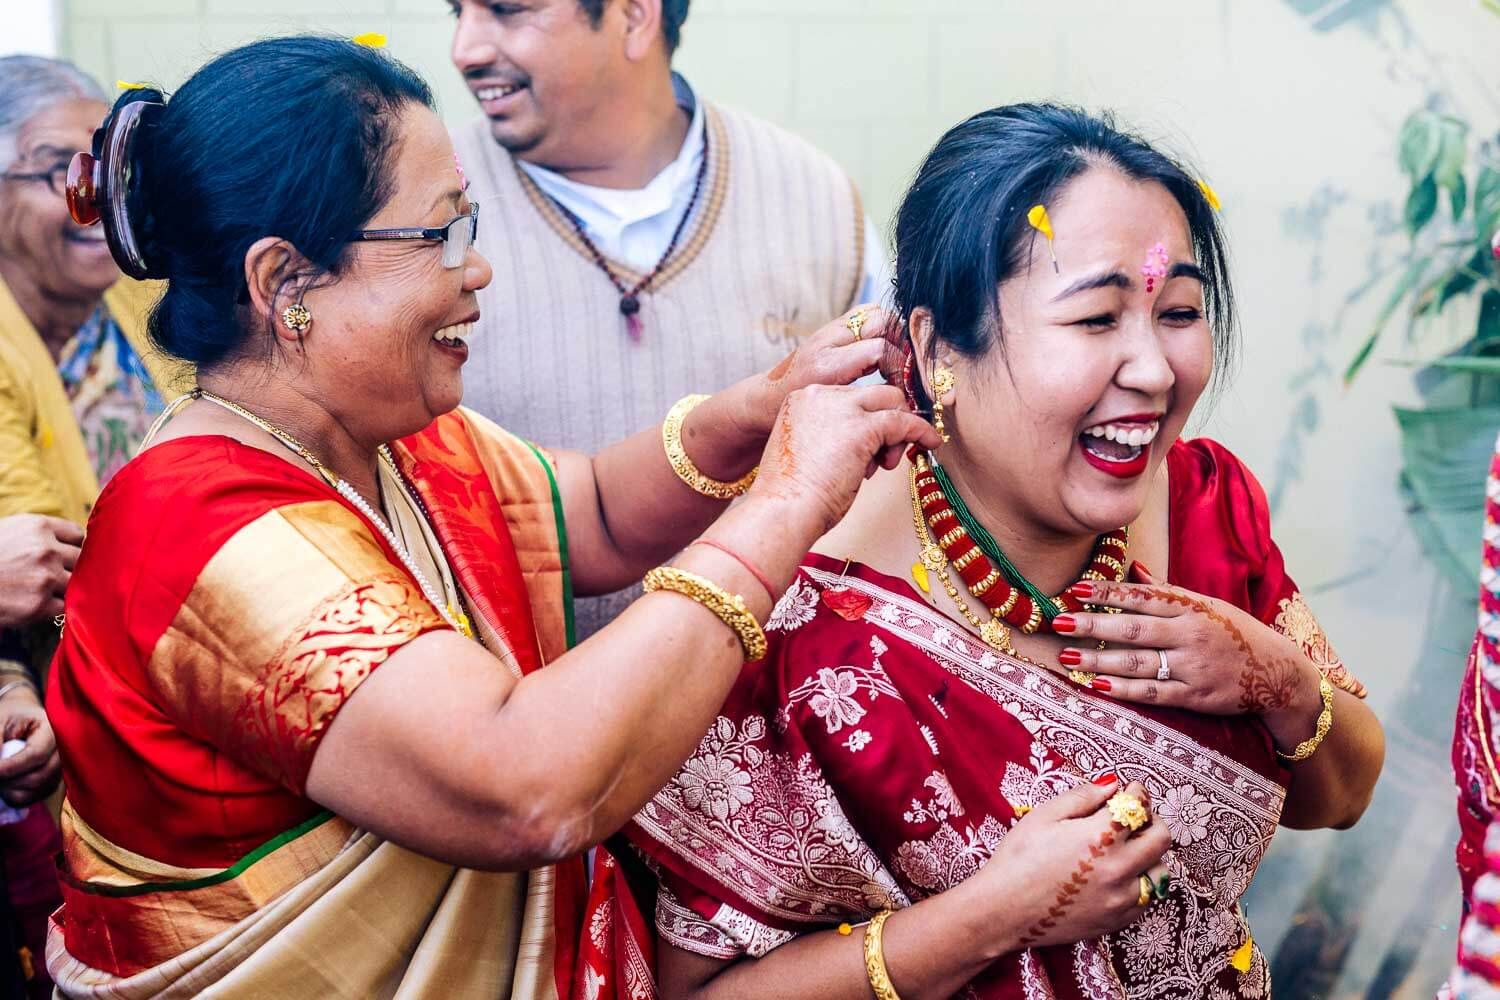 india wedding bride laughing